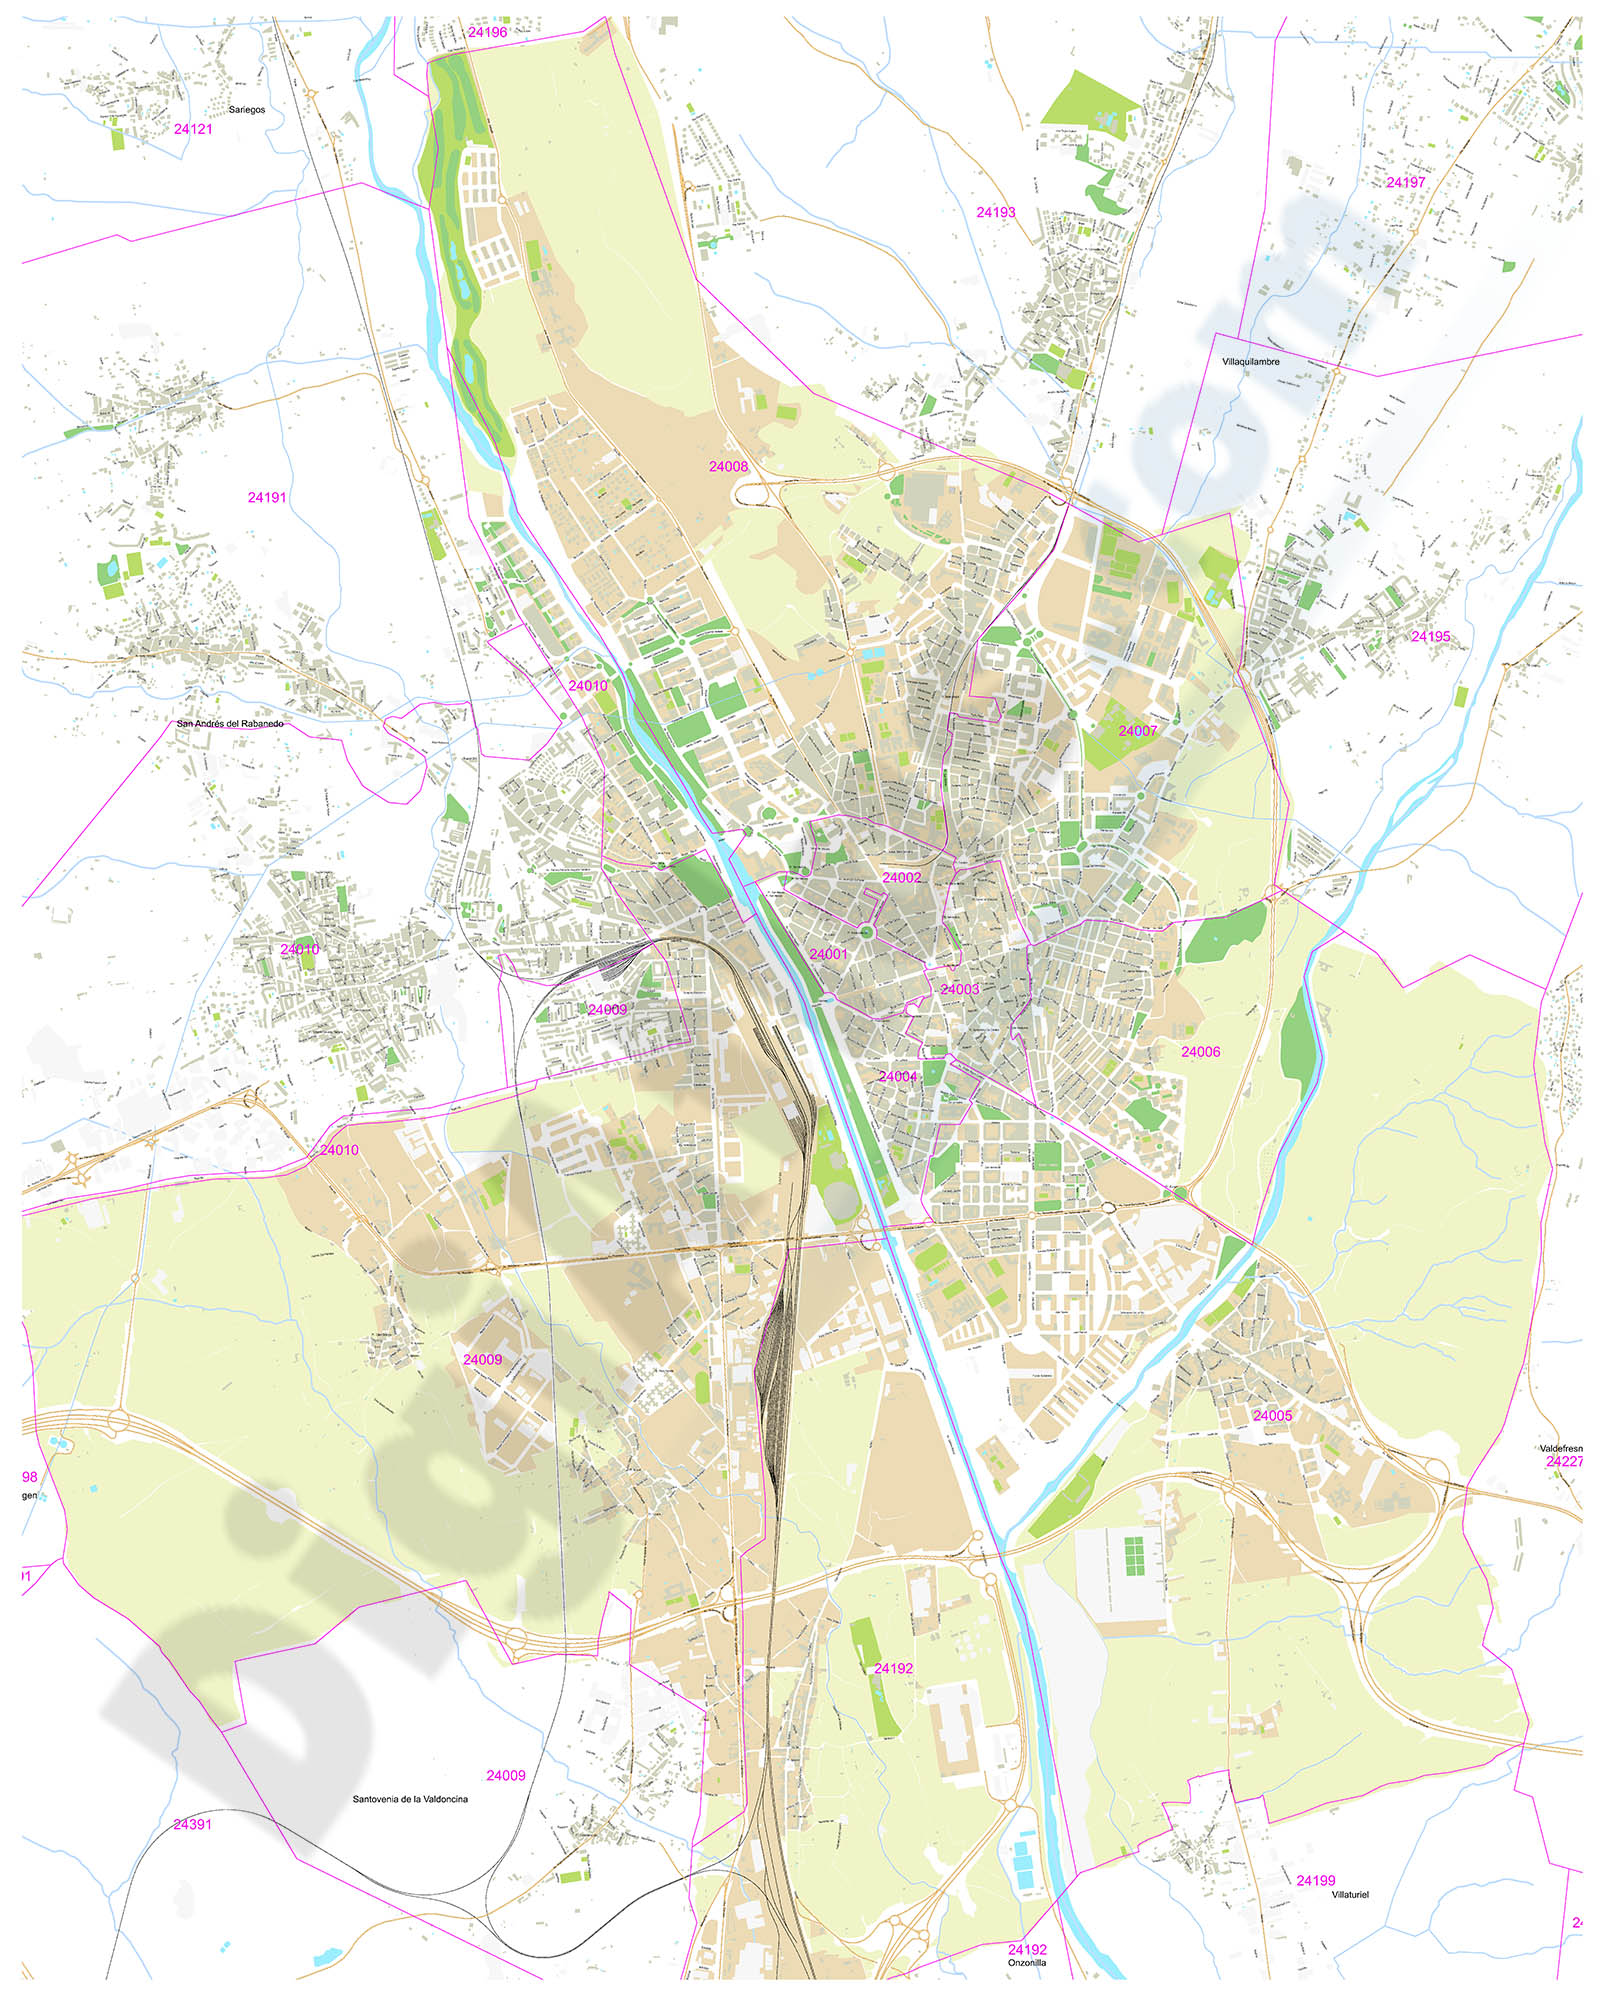 León (Spain) - city map